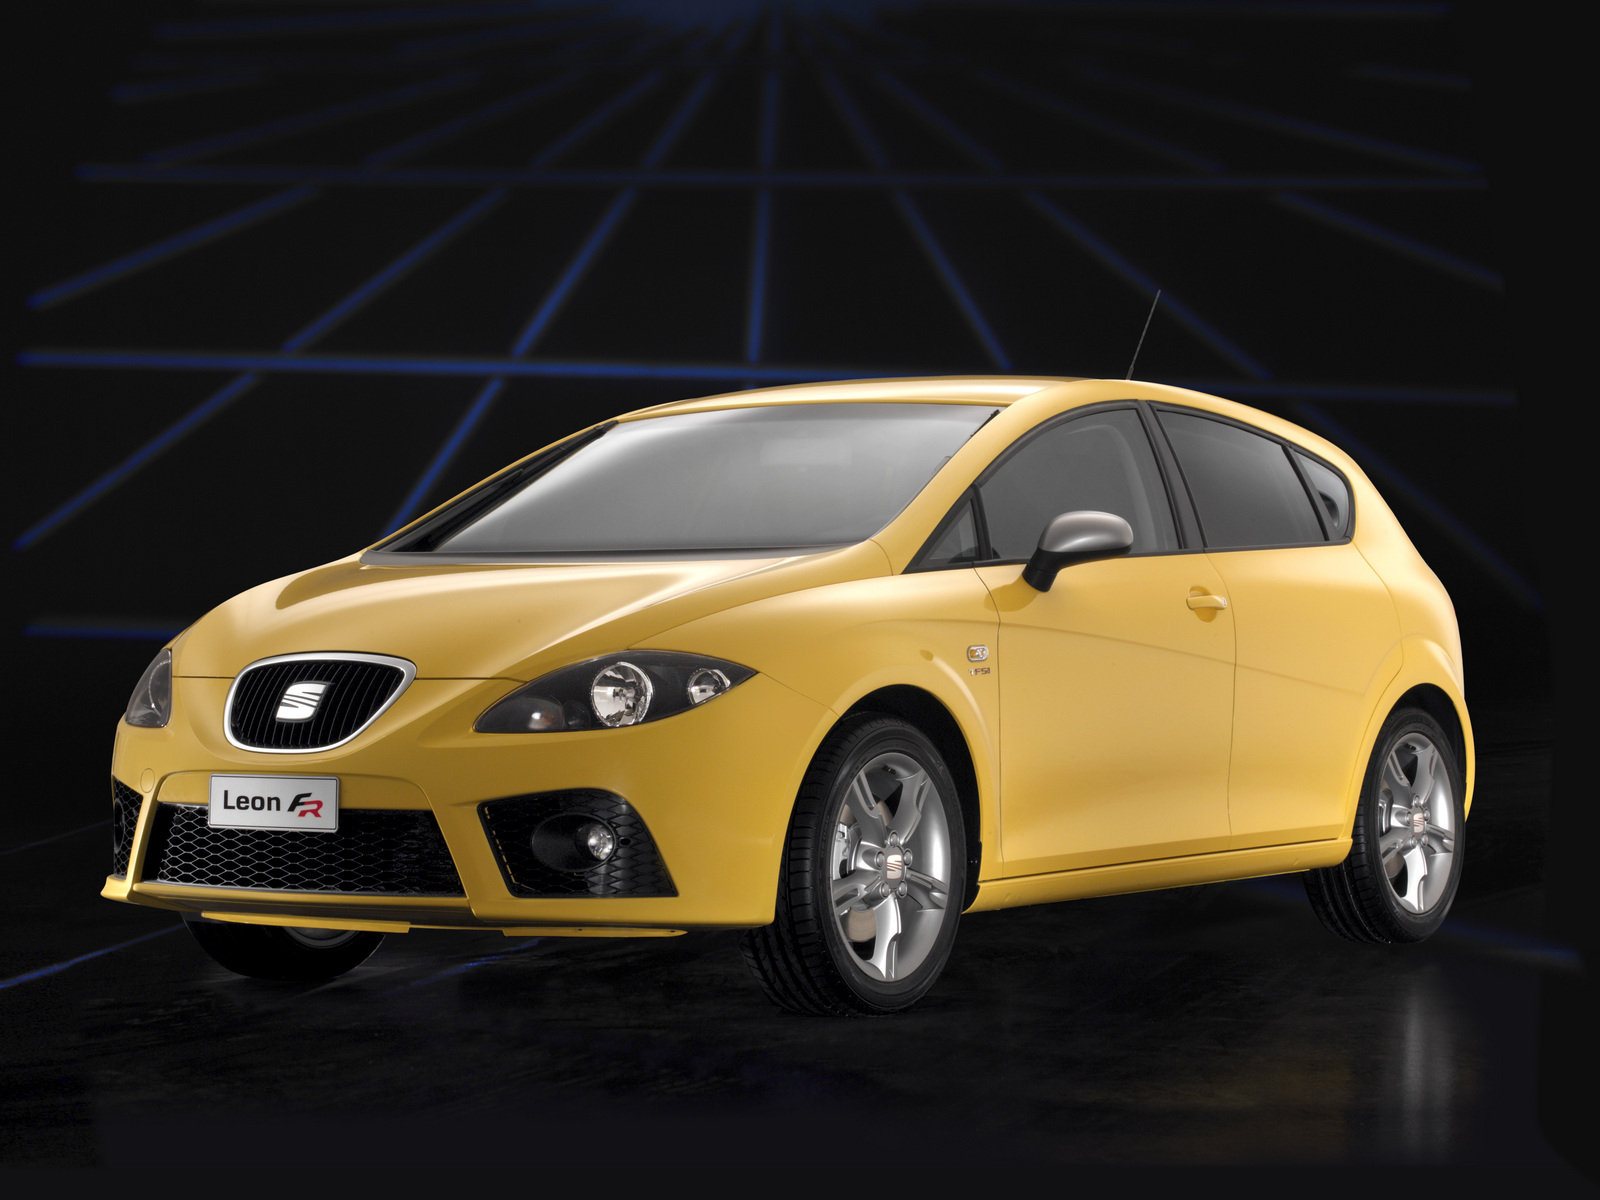 2006 seat leon fr review gallery top speed. Black Bedroom Furniture Sets. Home Design Ideas